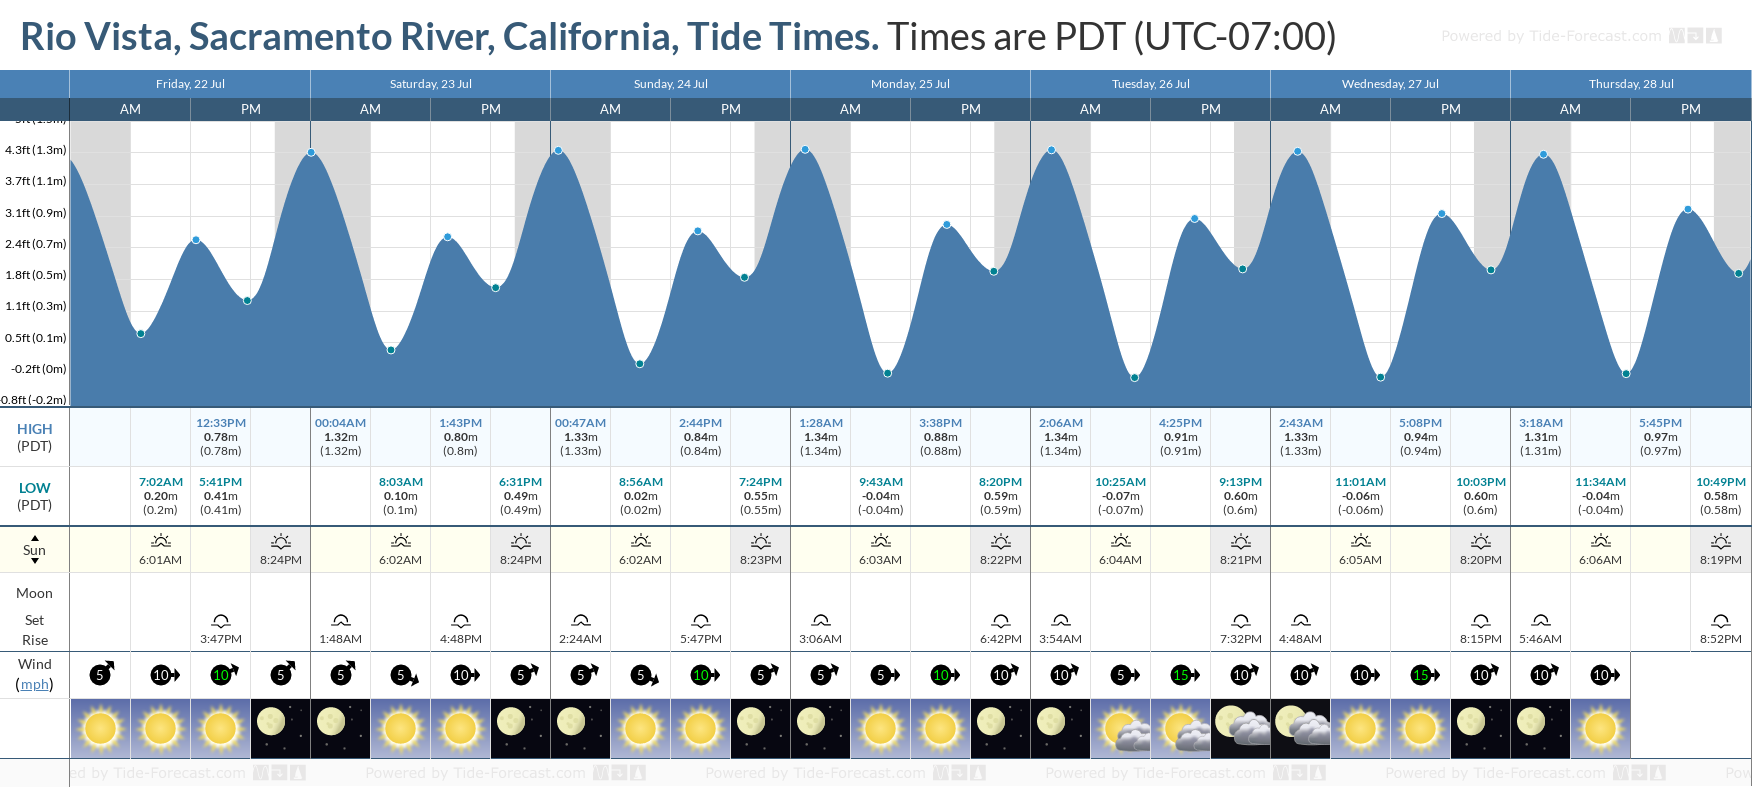 Rio Vista, Sacramento River, California Tide Chart including high and low tide tide times for the next 7 days